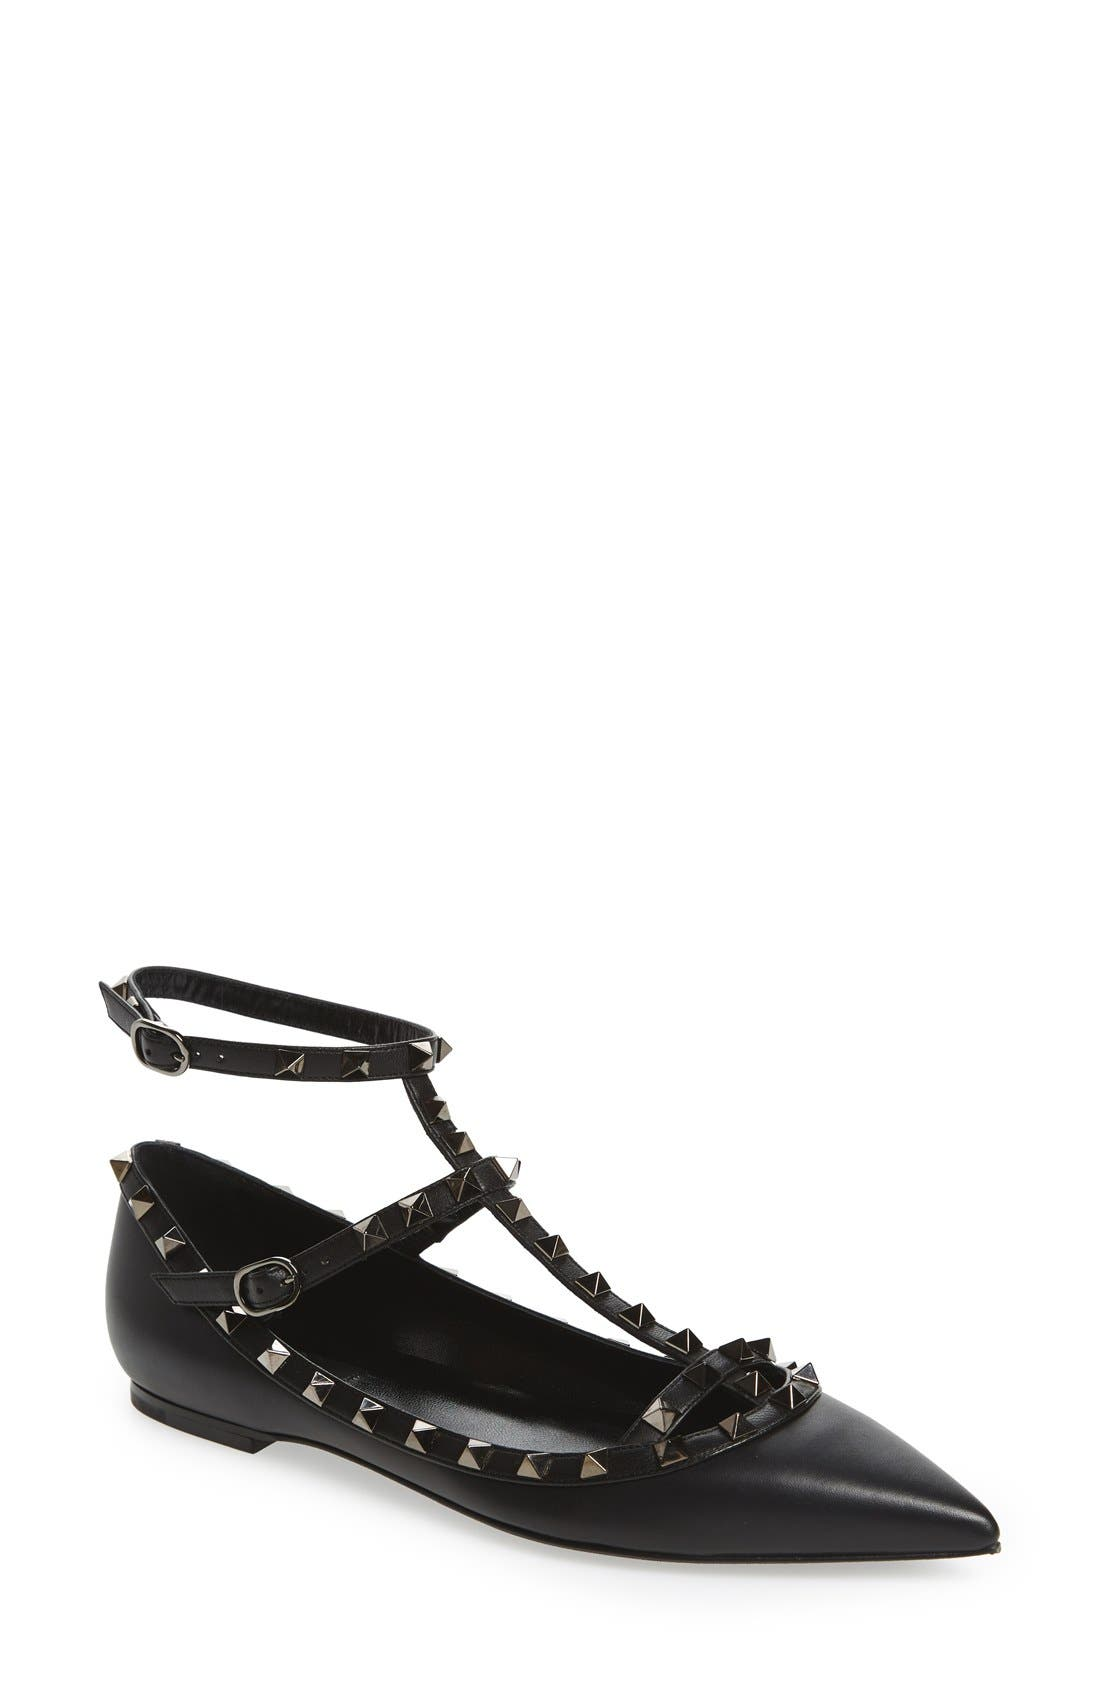 Main Image - Valentino 'Rockstud' Double Ankle Strap Pointy Toe Flat